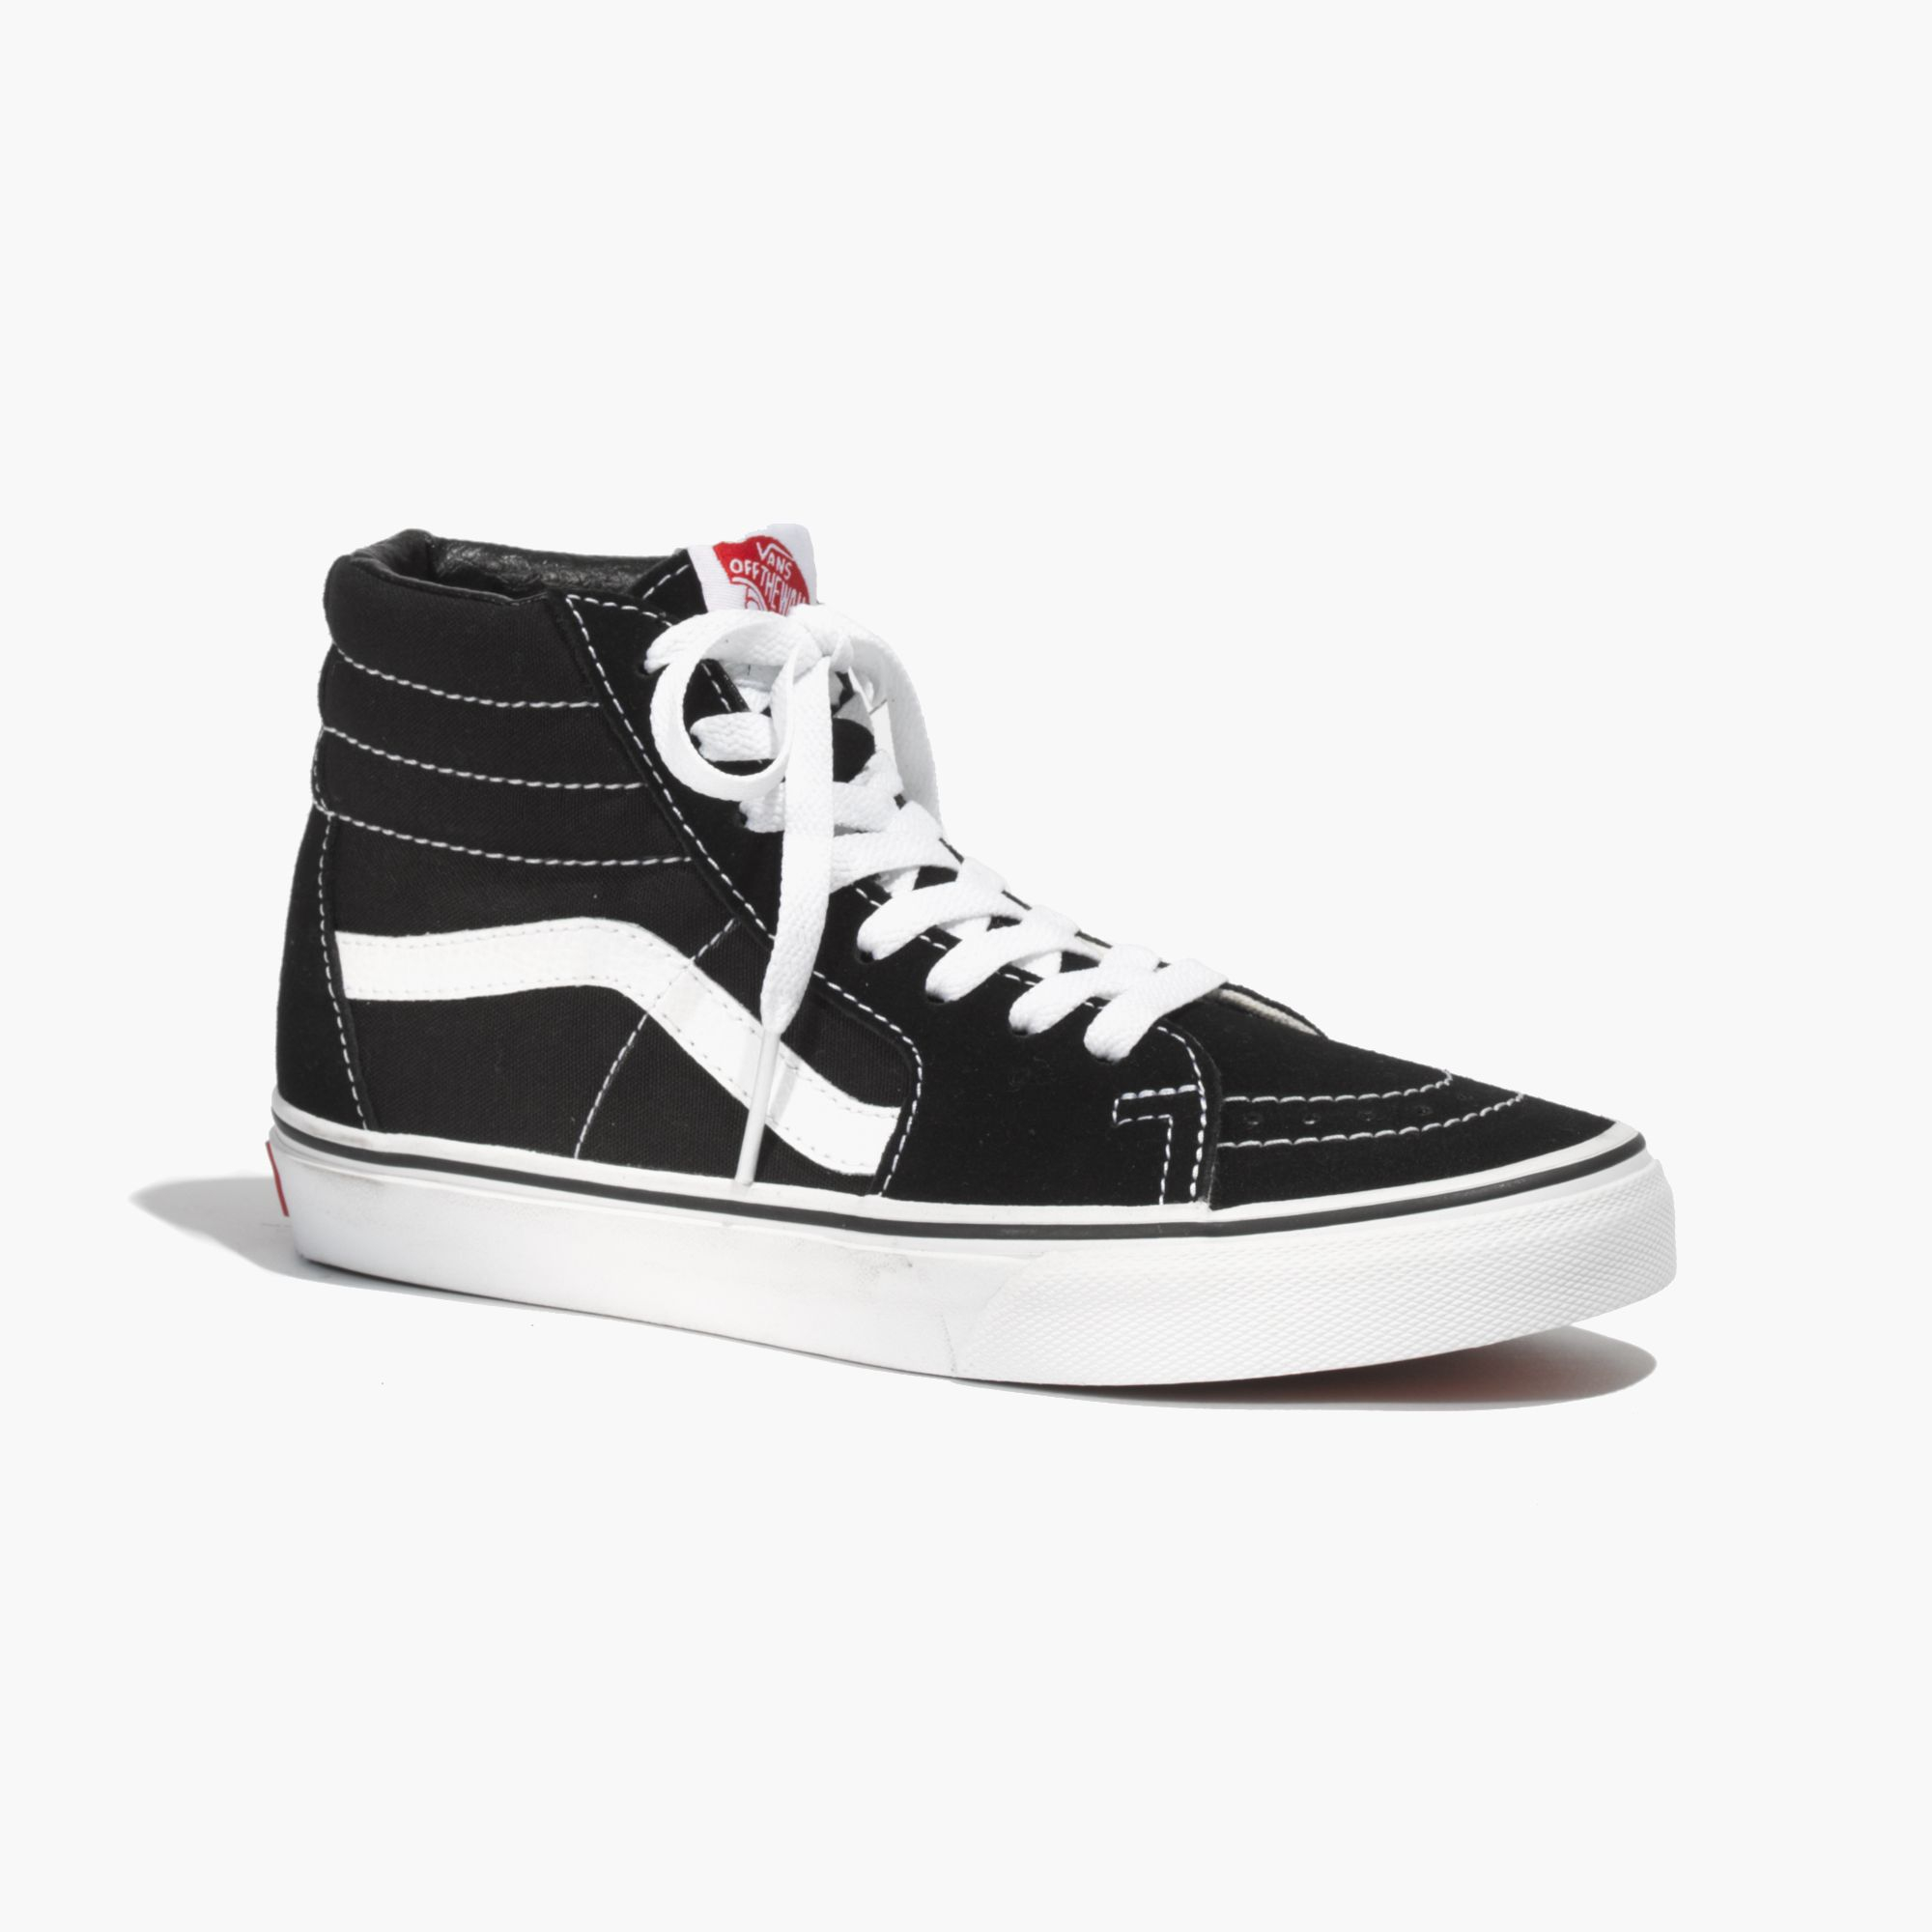 madewell vans classic sk8 hi high tops in canvas in black lyst. Black Bedroom Furniture Sets. Home Design Ideas